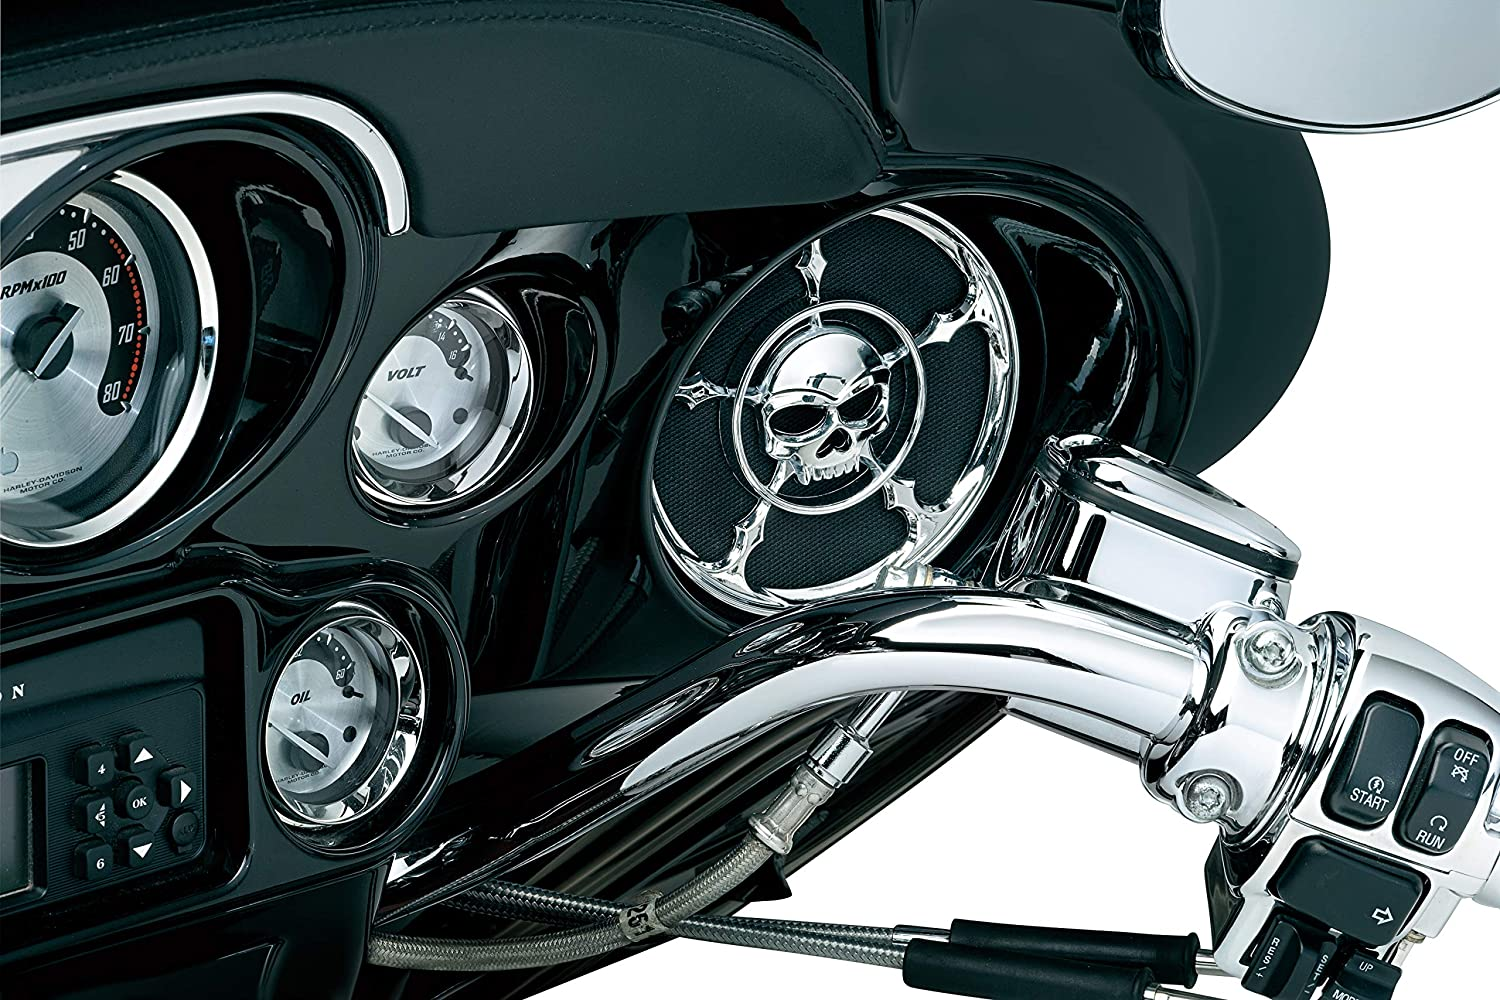 Kuryakyn 3787 Motorcycle Audio Accessory Chrome 1 Pair Zombie Skull Speaker Grill Accents for 1996-2013 Harley-Davidson Touring /& Trike Motorcycles